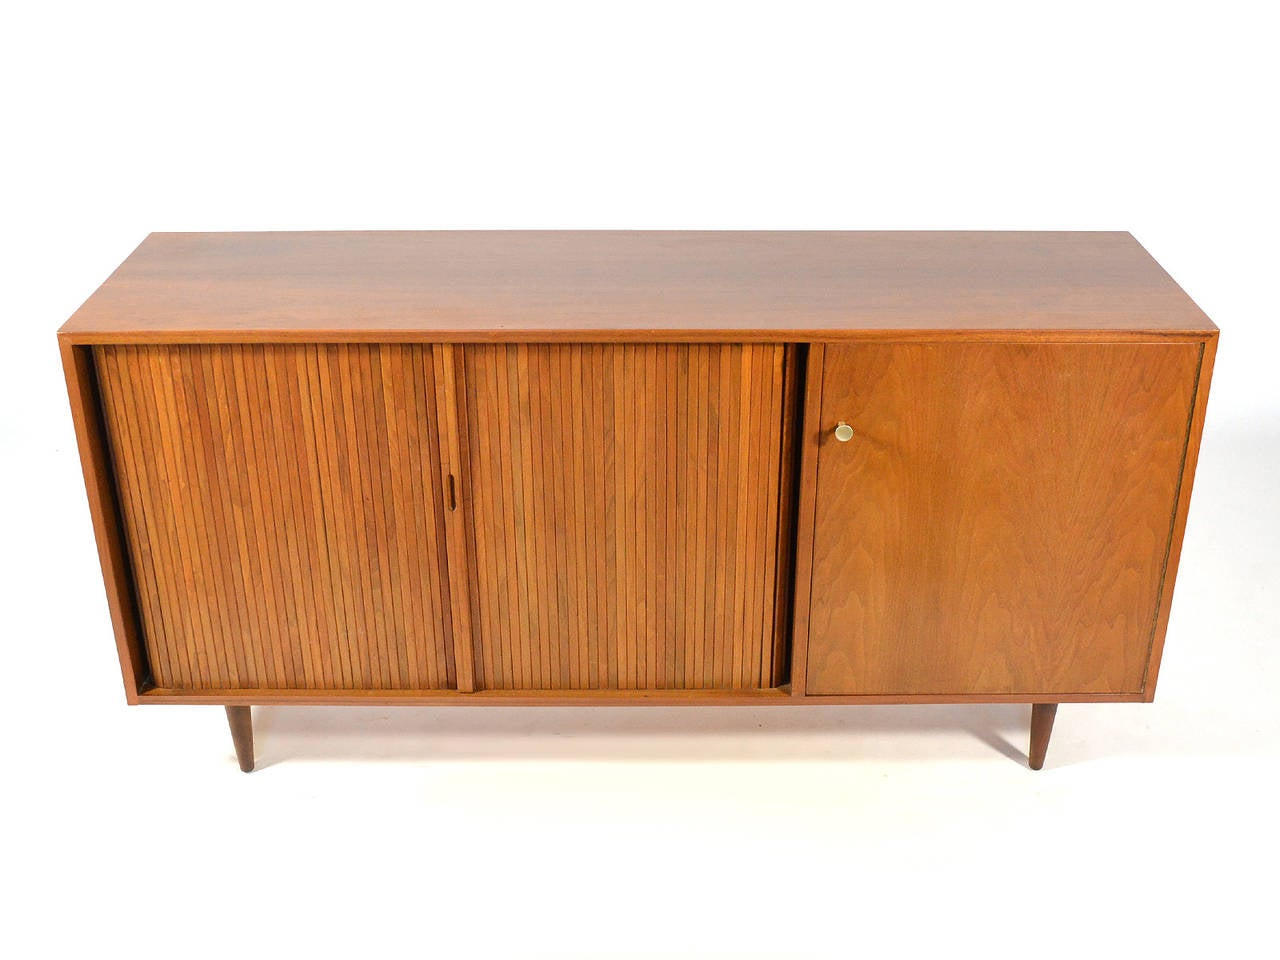 Milo Baughman Credenza by Glenn of California In Good Condition For Sale In Highland, IN